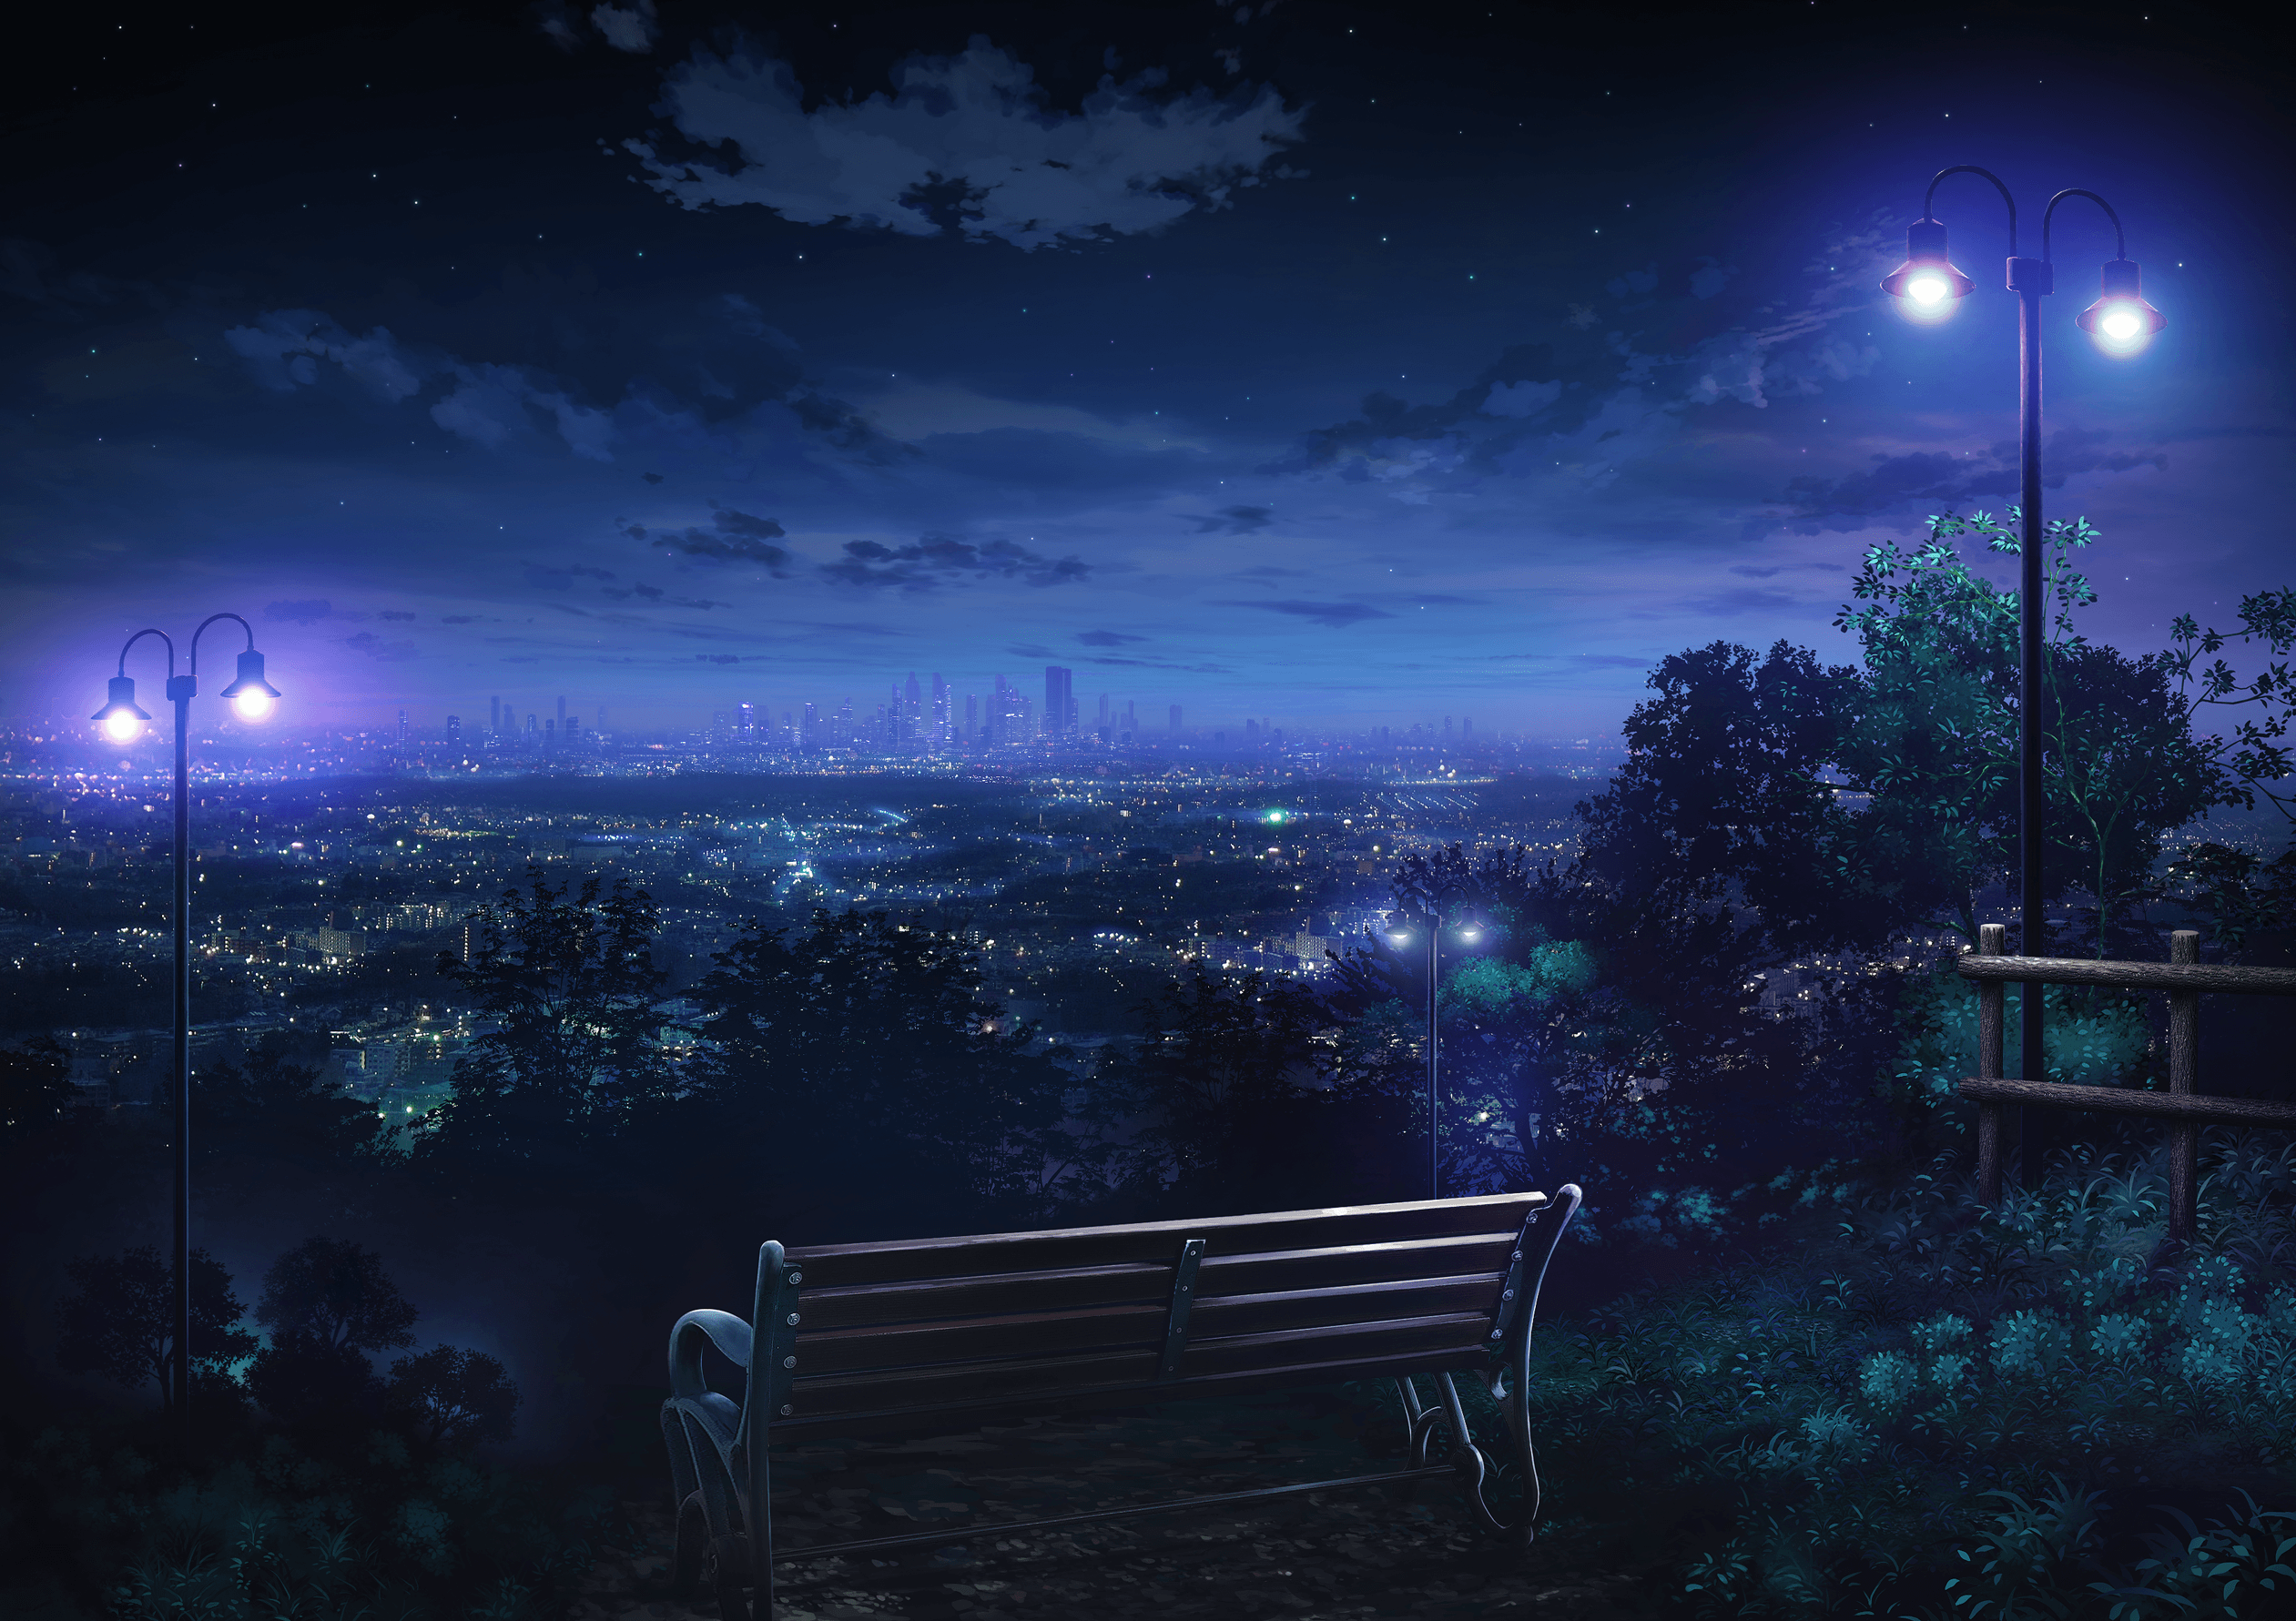 Anime Night City Wallpapers - Top Free